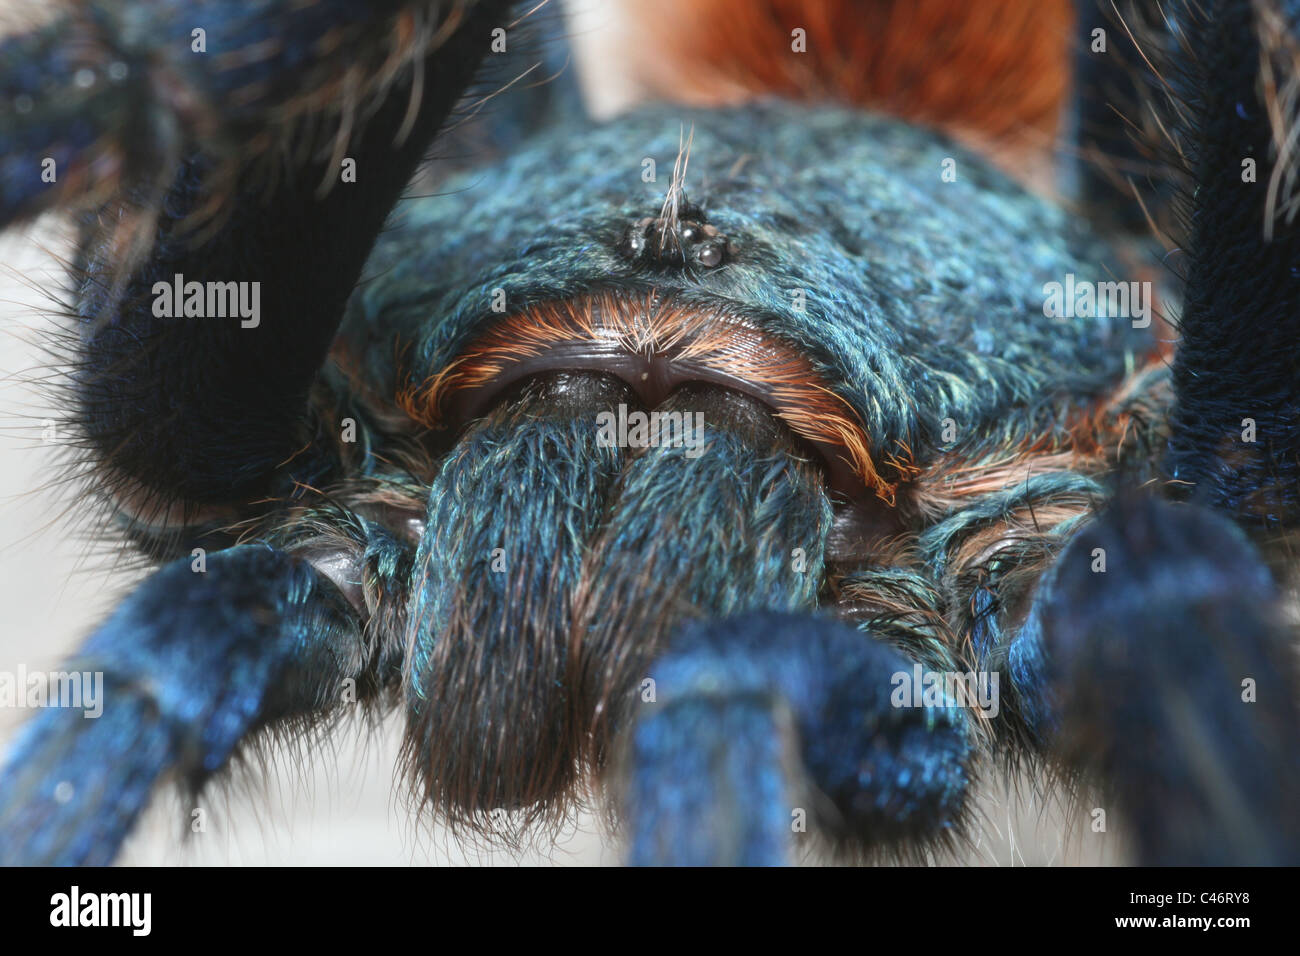 Greenbottle blue Tarantula (Chromatopelma cyaneopubescens) from ranforest in Venezuela. - Stock Image